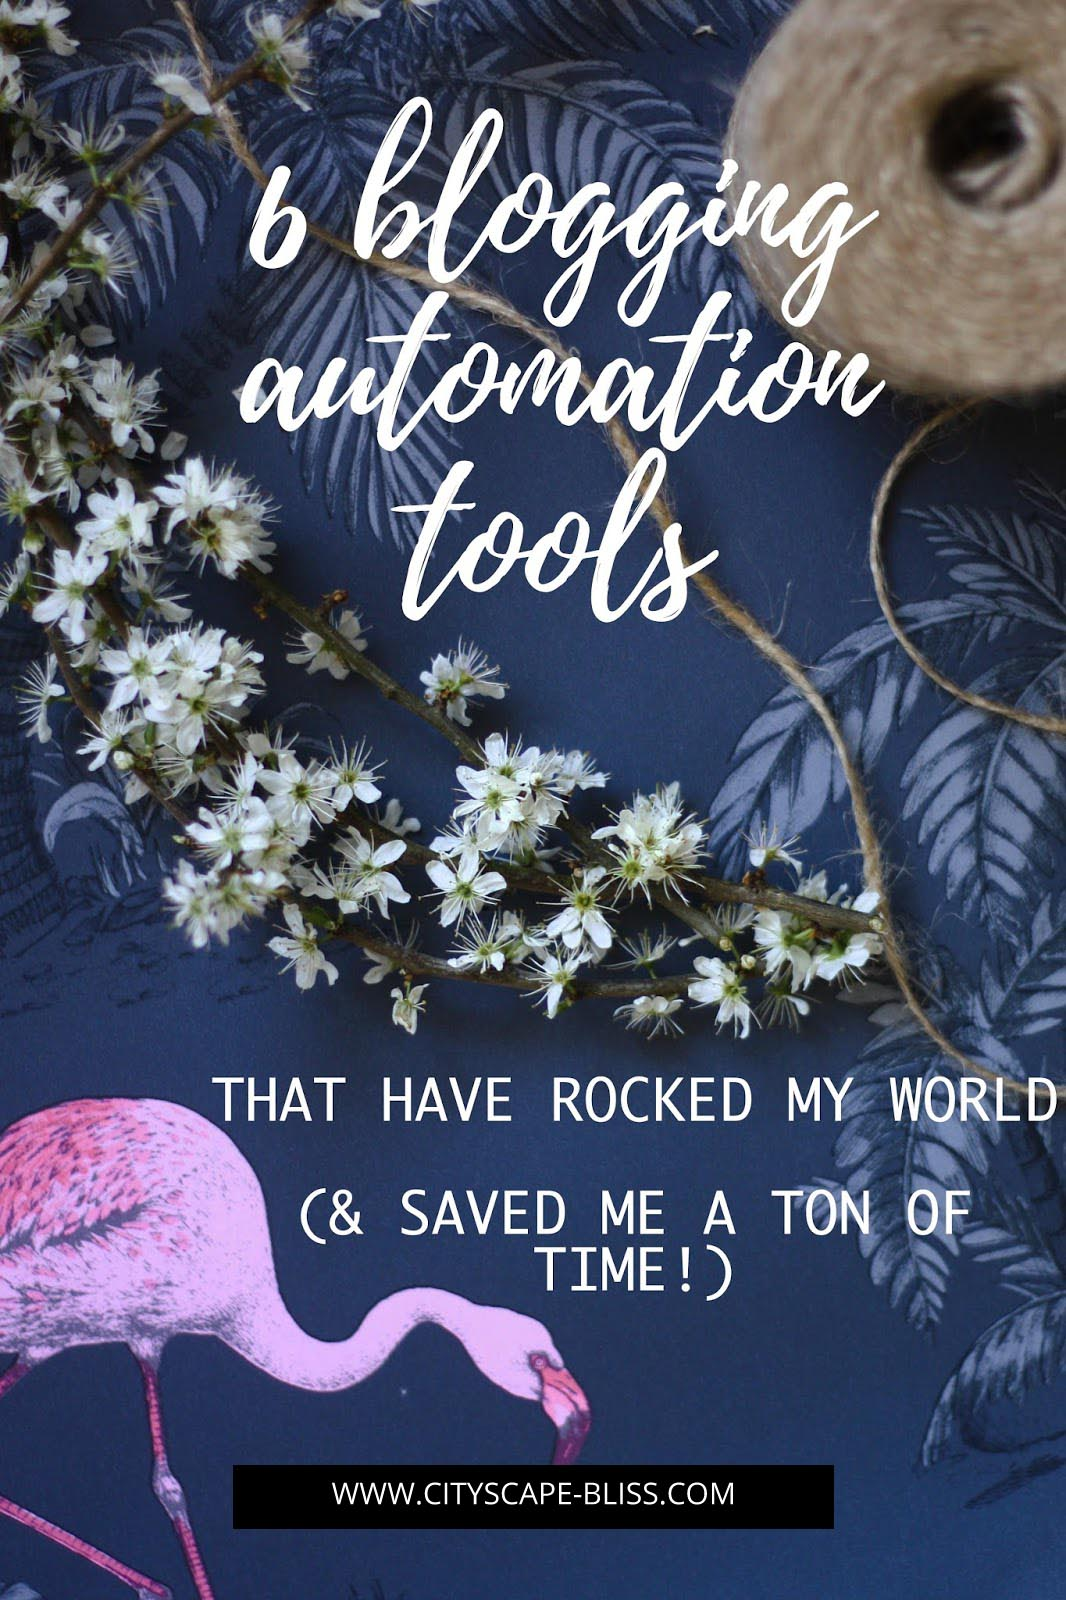 6 blogging automation tools that have rocked my world (& saved me a TON of time!)